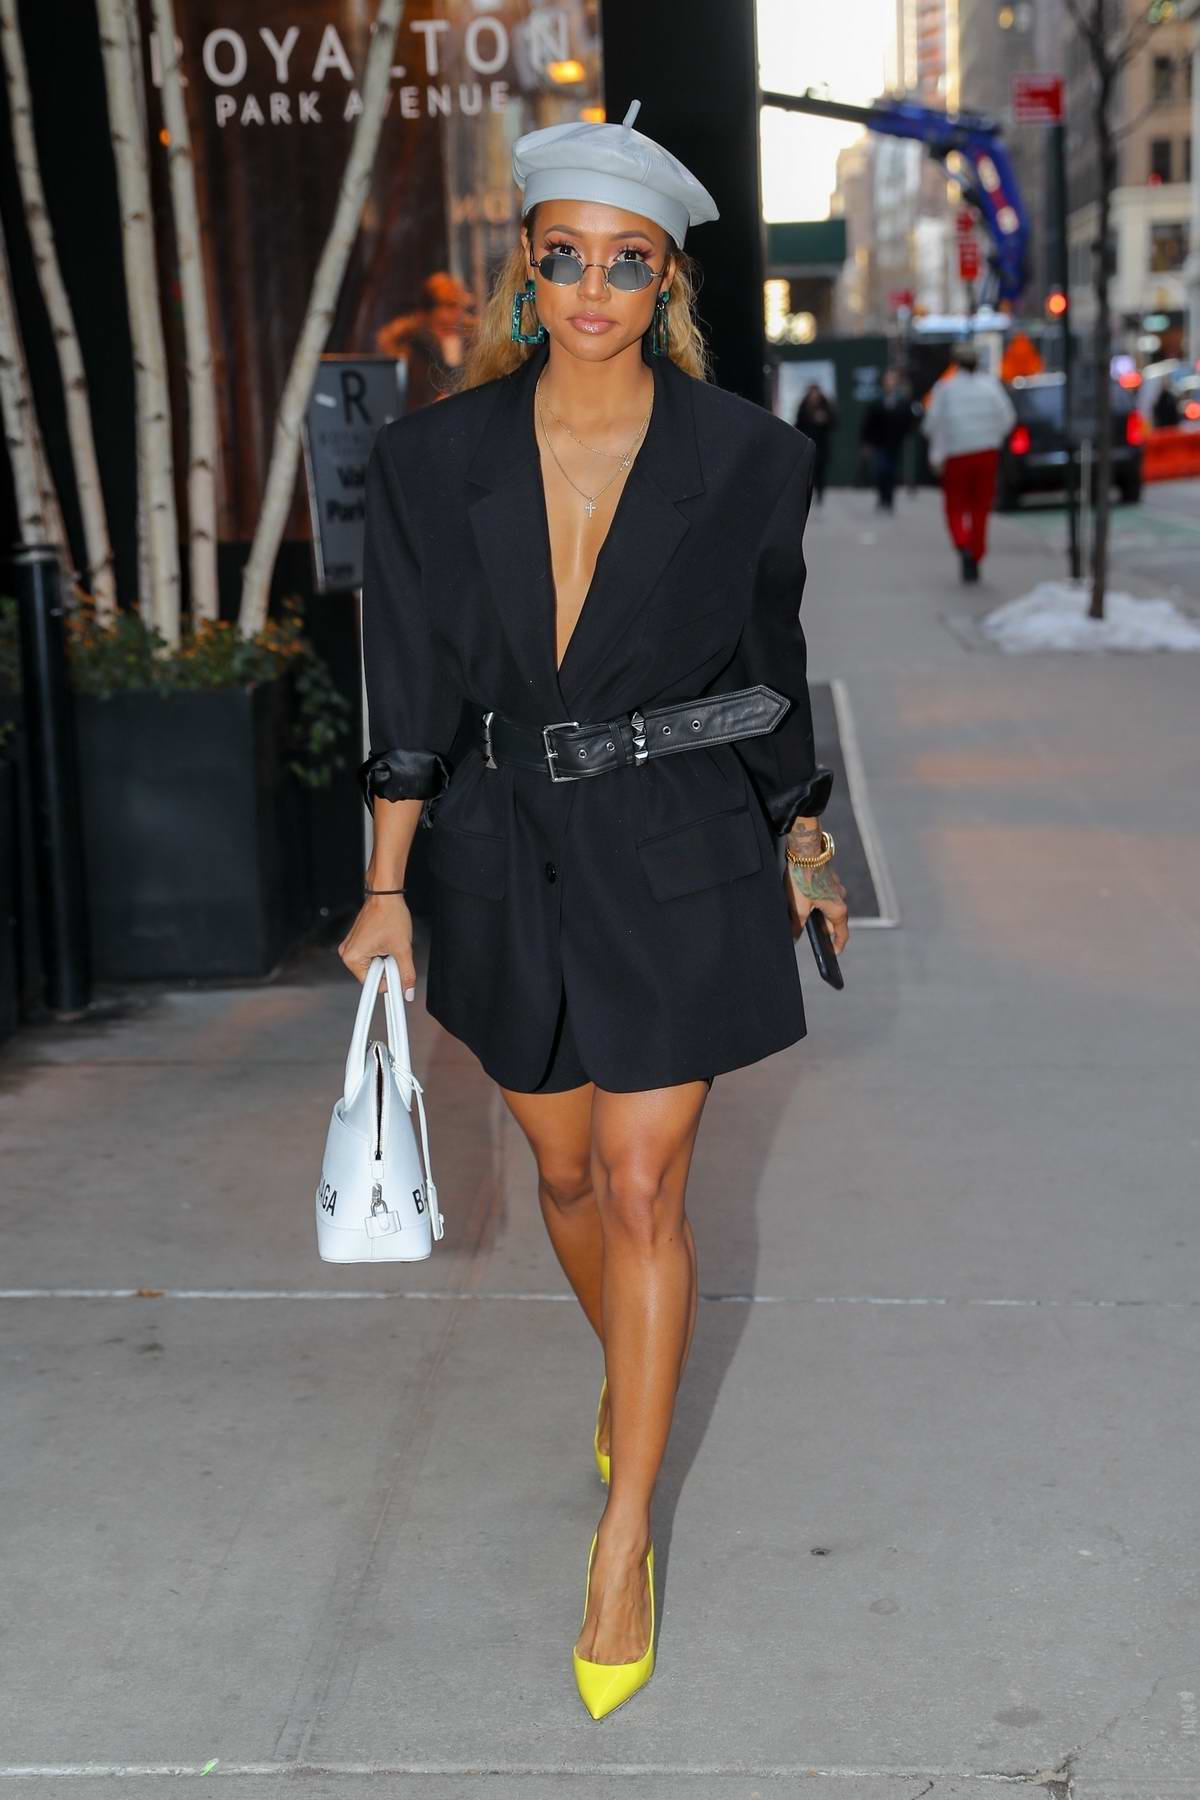 Karrueche Tran keeps it stylish with a short black dress, bright yellow pumps and a beret while out in New York City